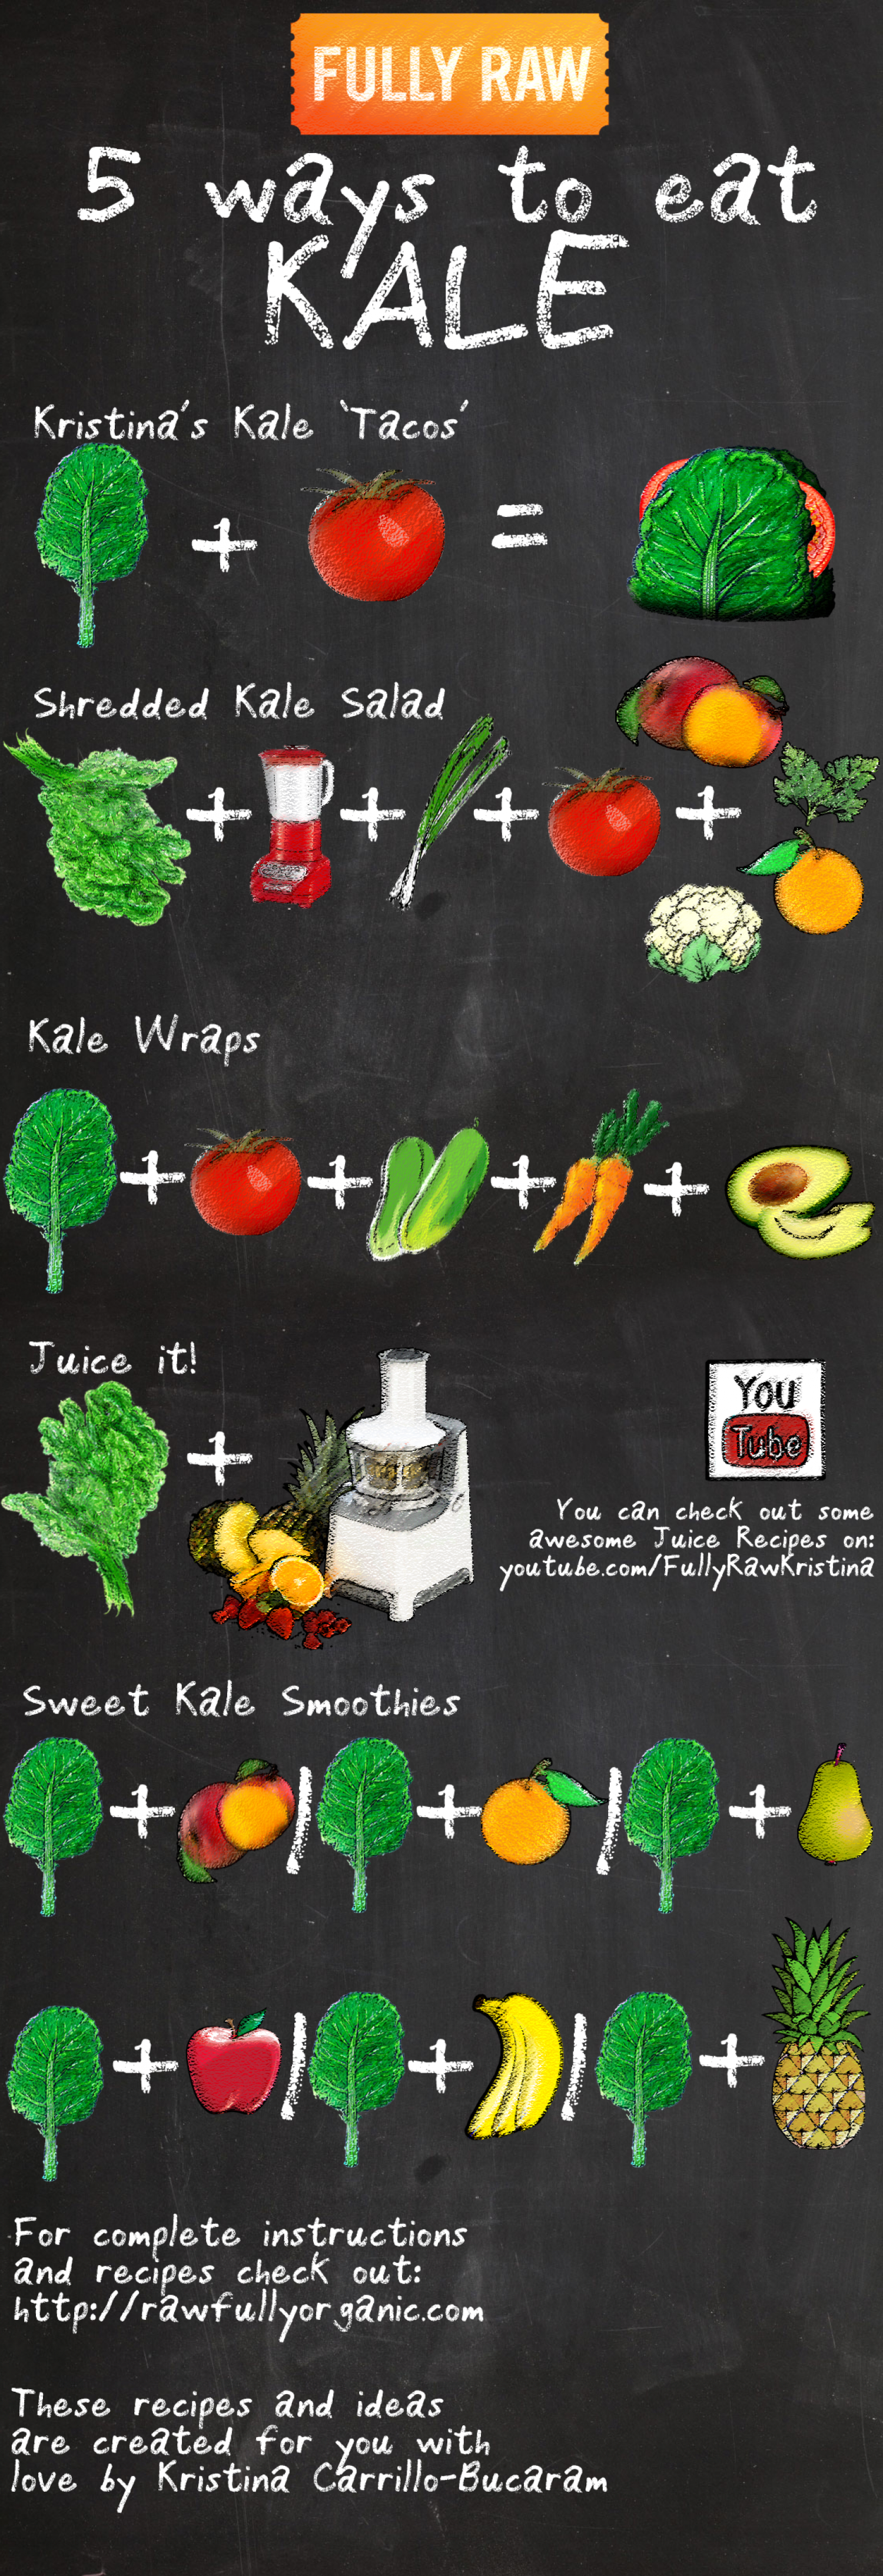 5 Ways to Eat Kale Infographic